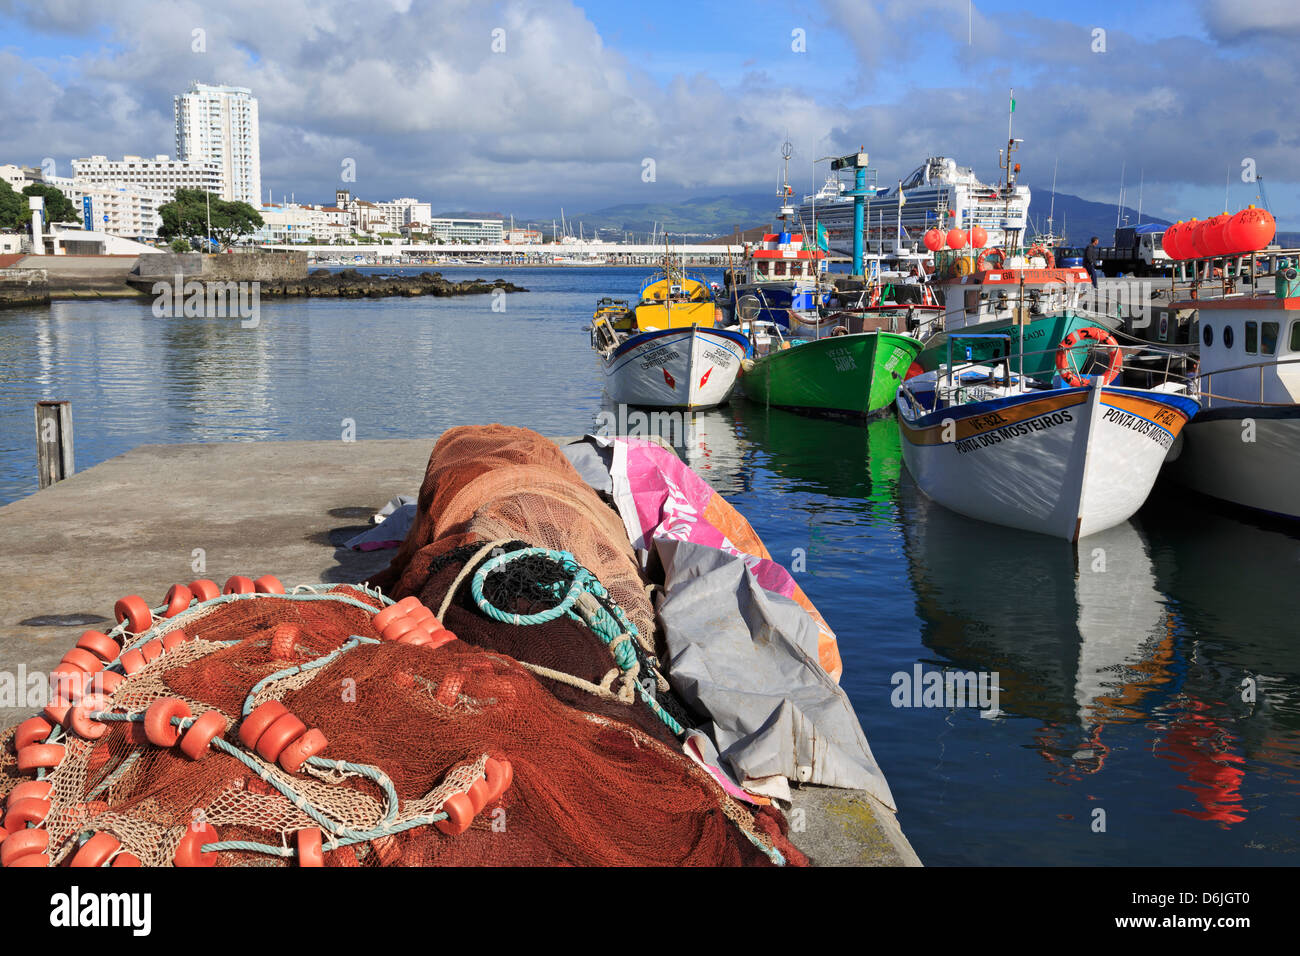 Fishing boats in harbour, Ponta Delgada Port, Sao Miguel Island, Azores, Portugal, Atlantic, Europe - Stock Image